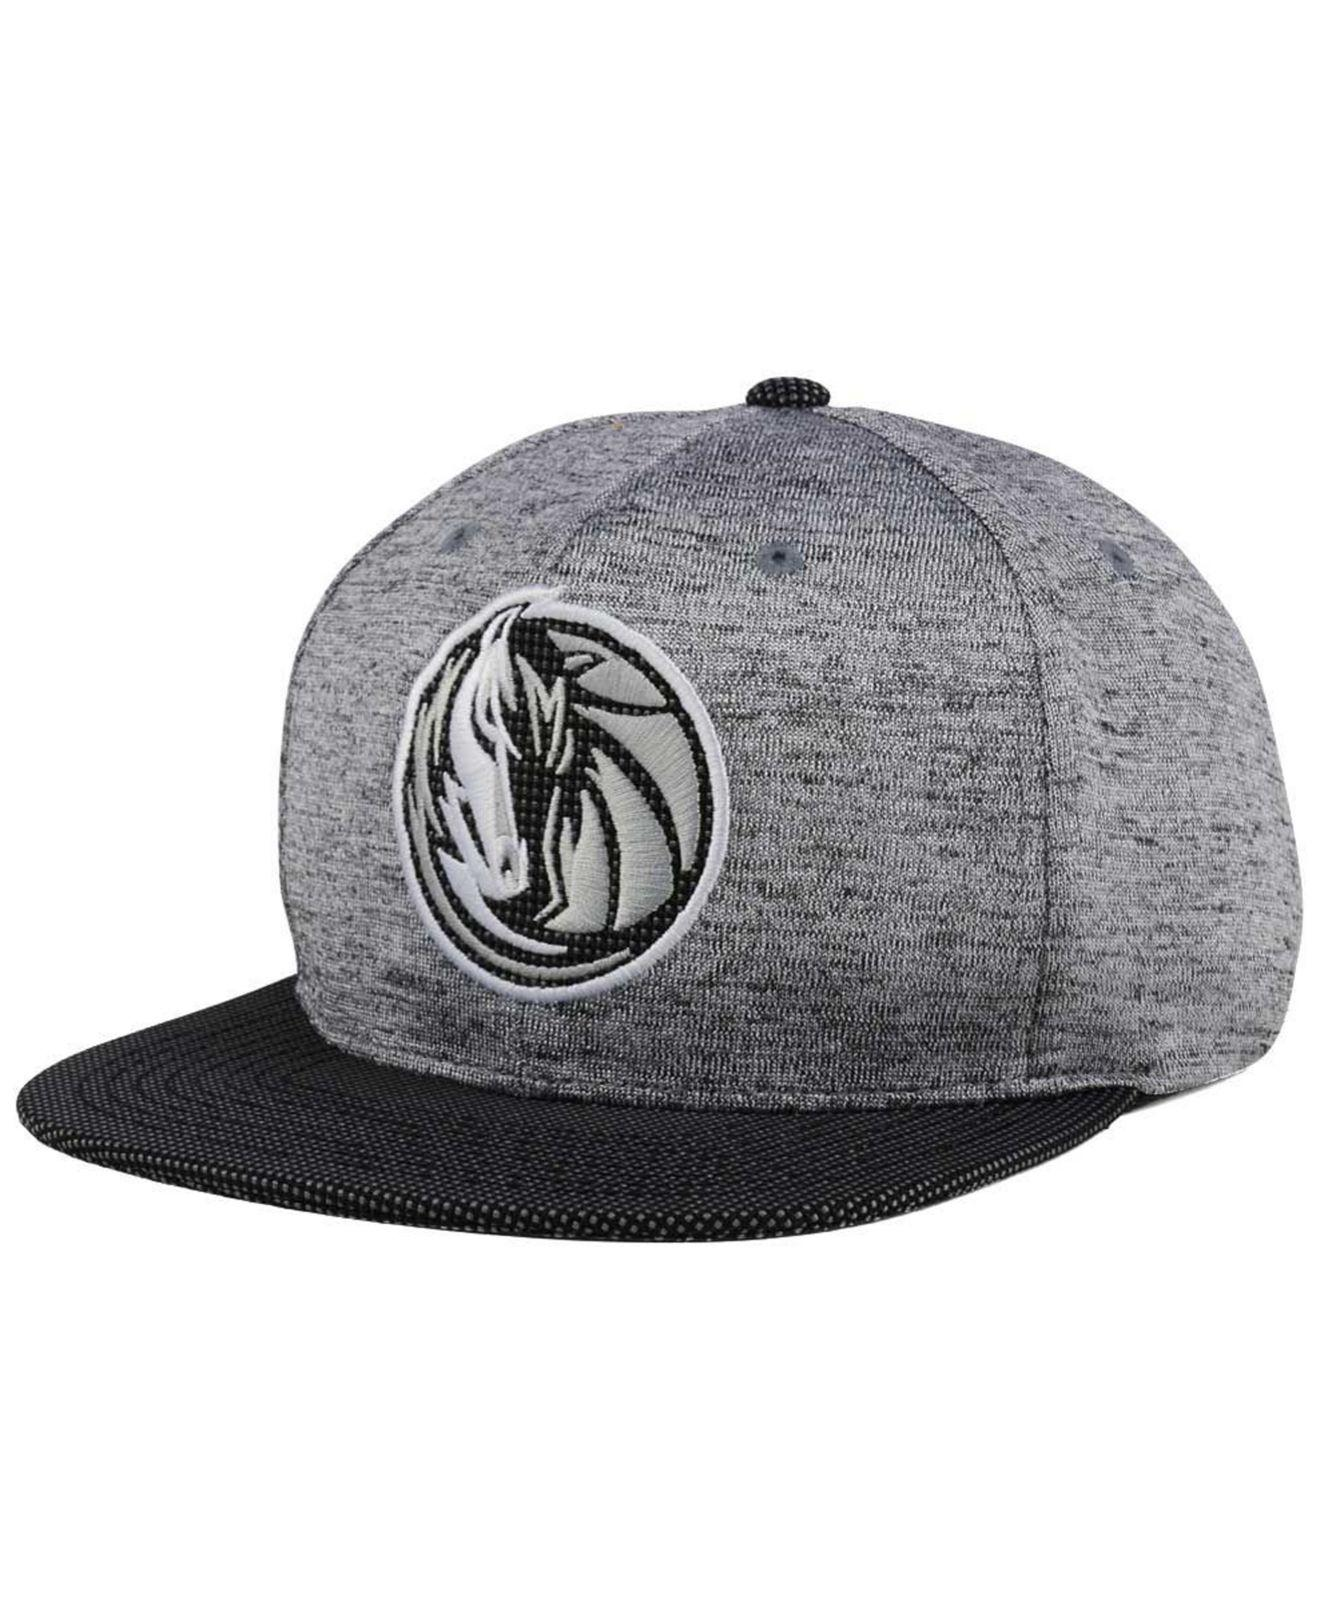 on sale f0f7f d75b5 ... hot mitchell ness. mens gray space knit snapback cap ea904 1e6bf